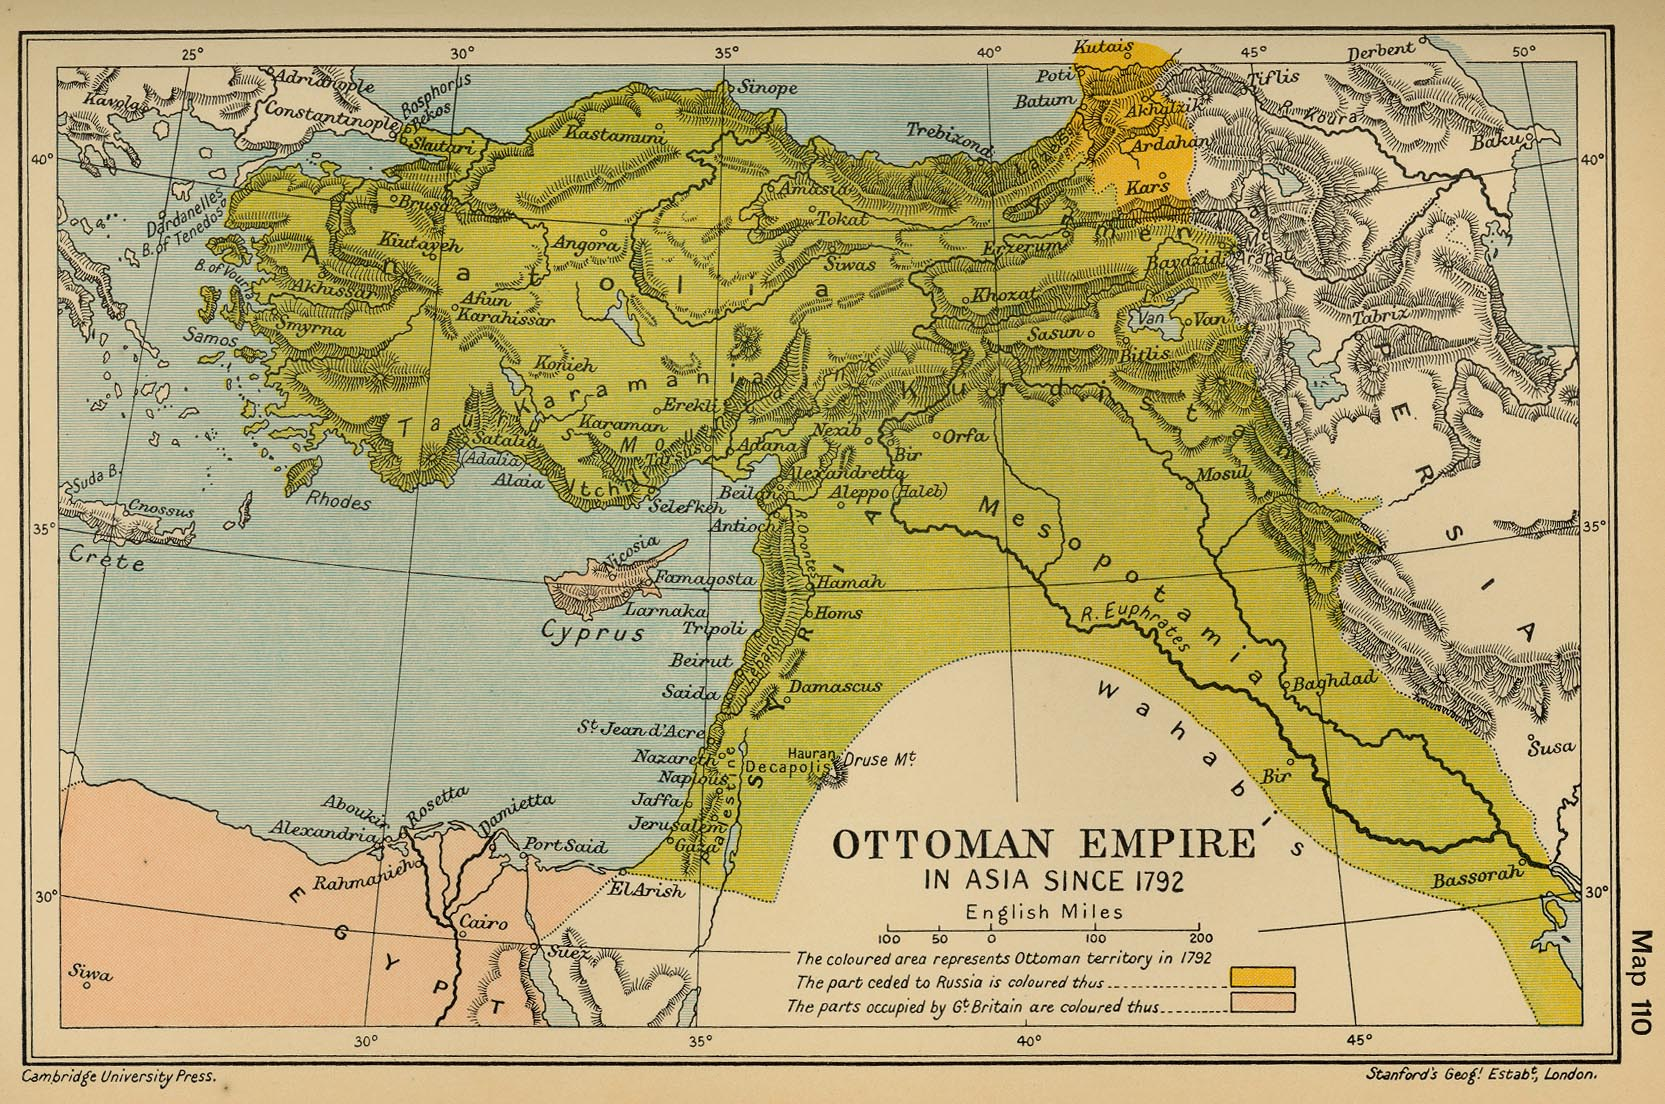 Map of the Ottoman Empire in Asia since 1792